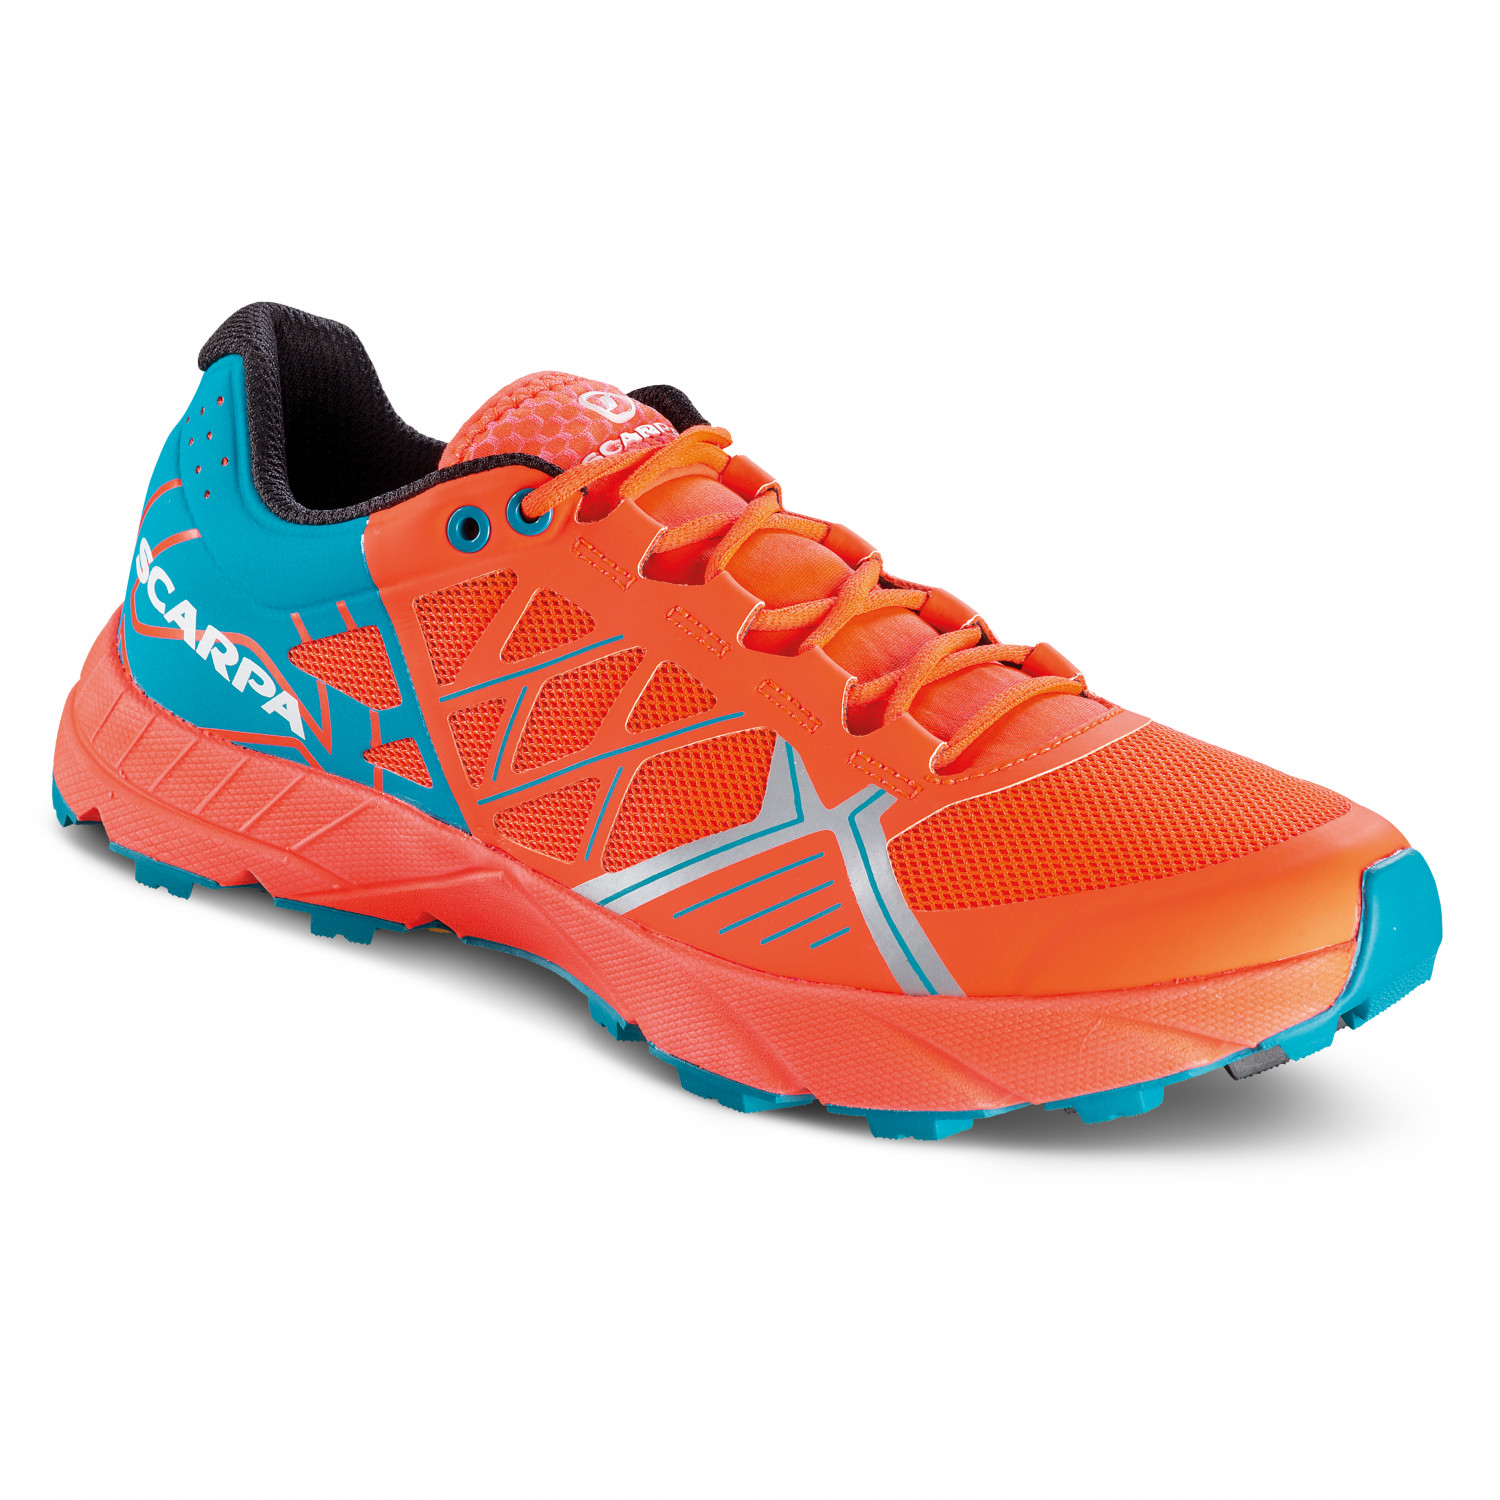 Scarpa Spin - Trail running shoes Women